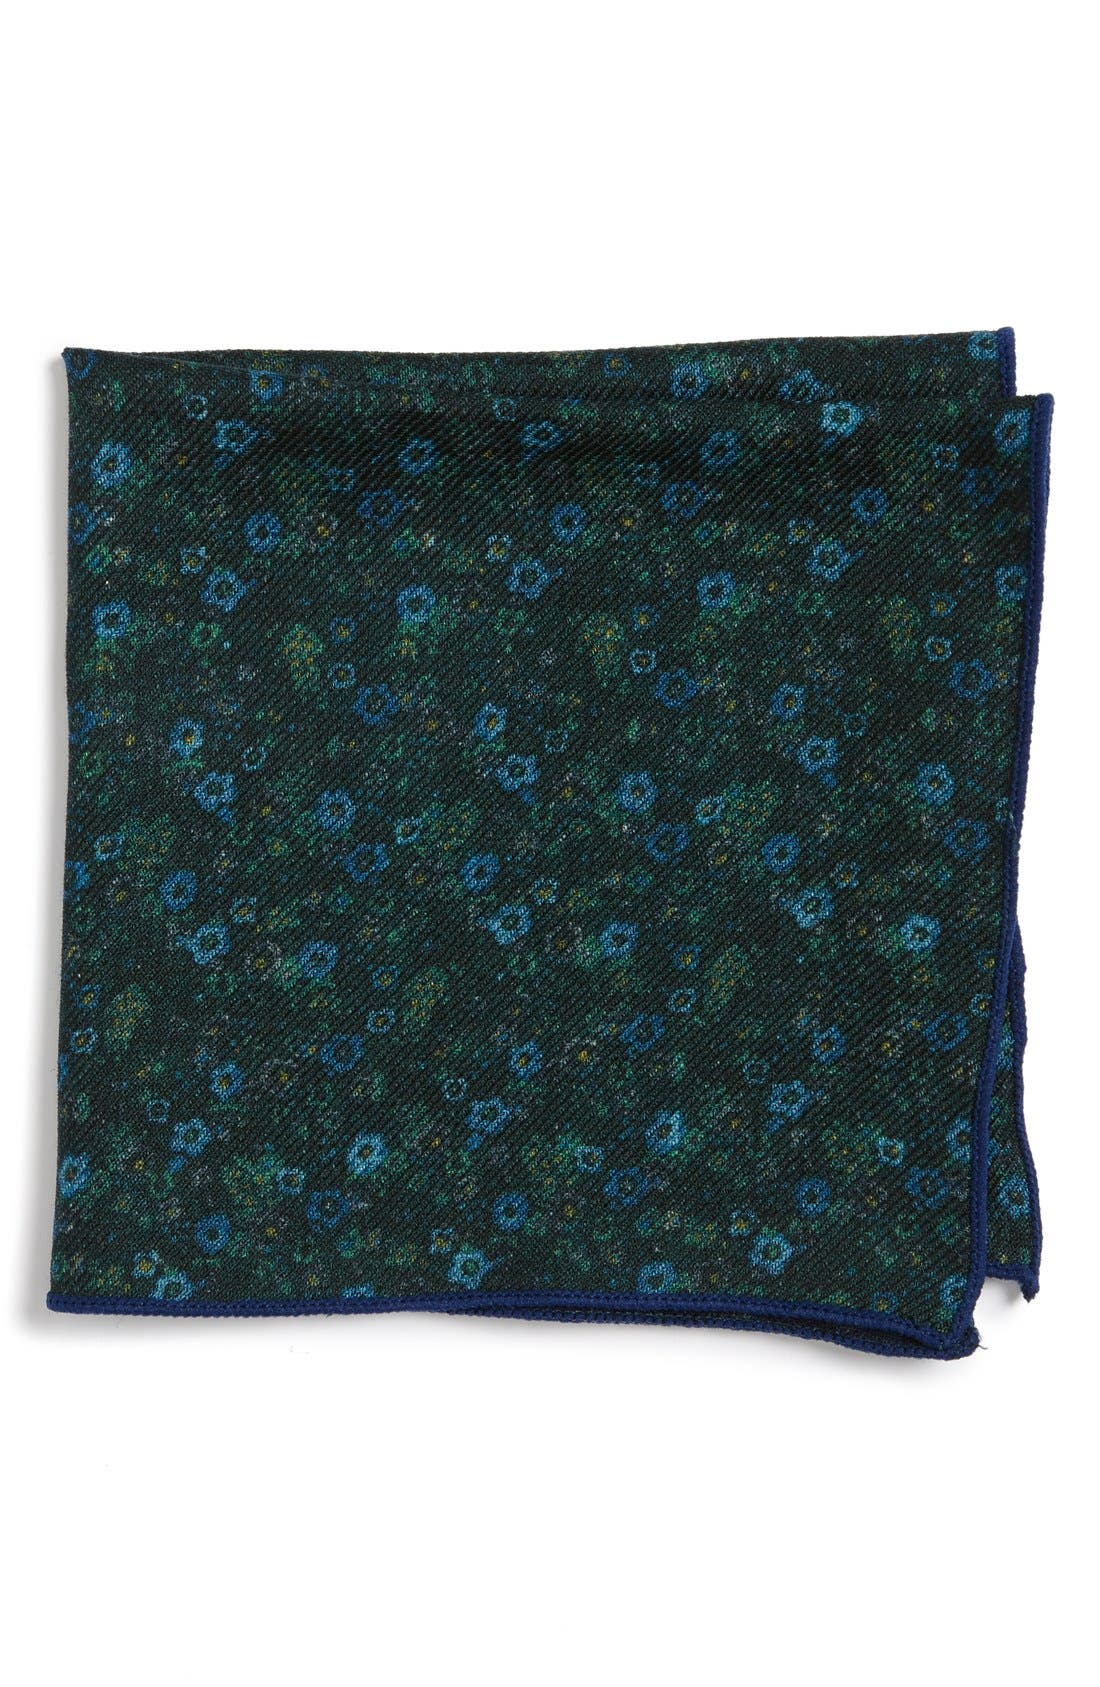 Alternate Image 1 Selected - The Tie Bar Floral Wool Pocket Square